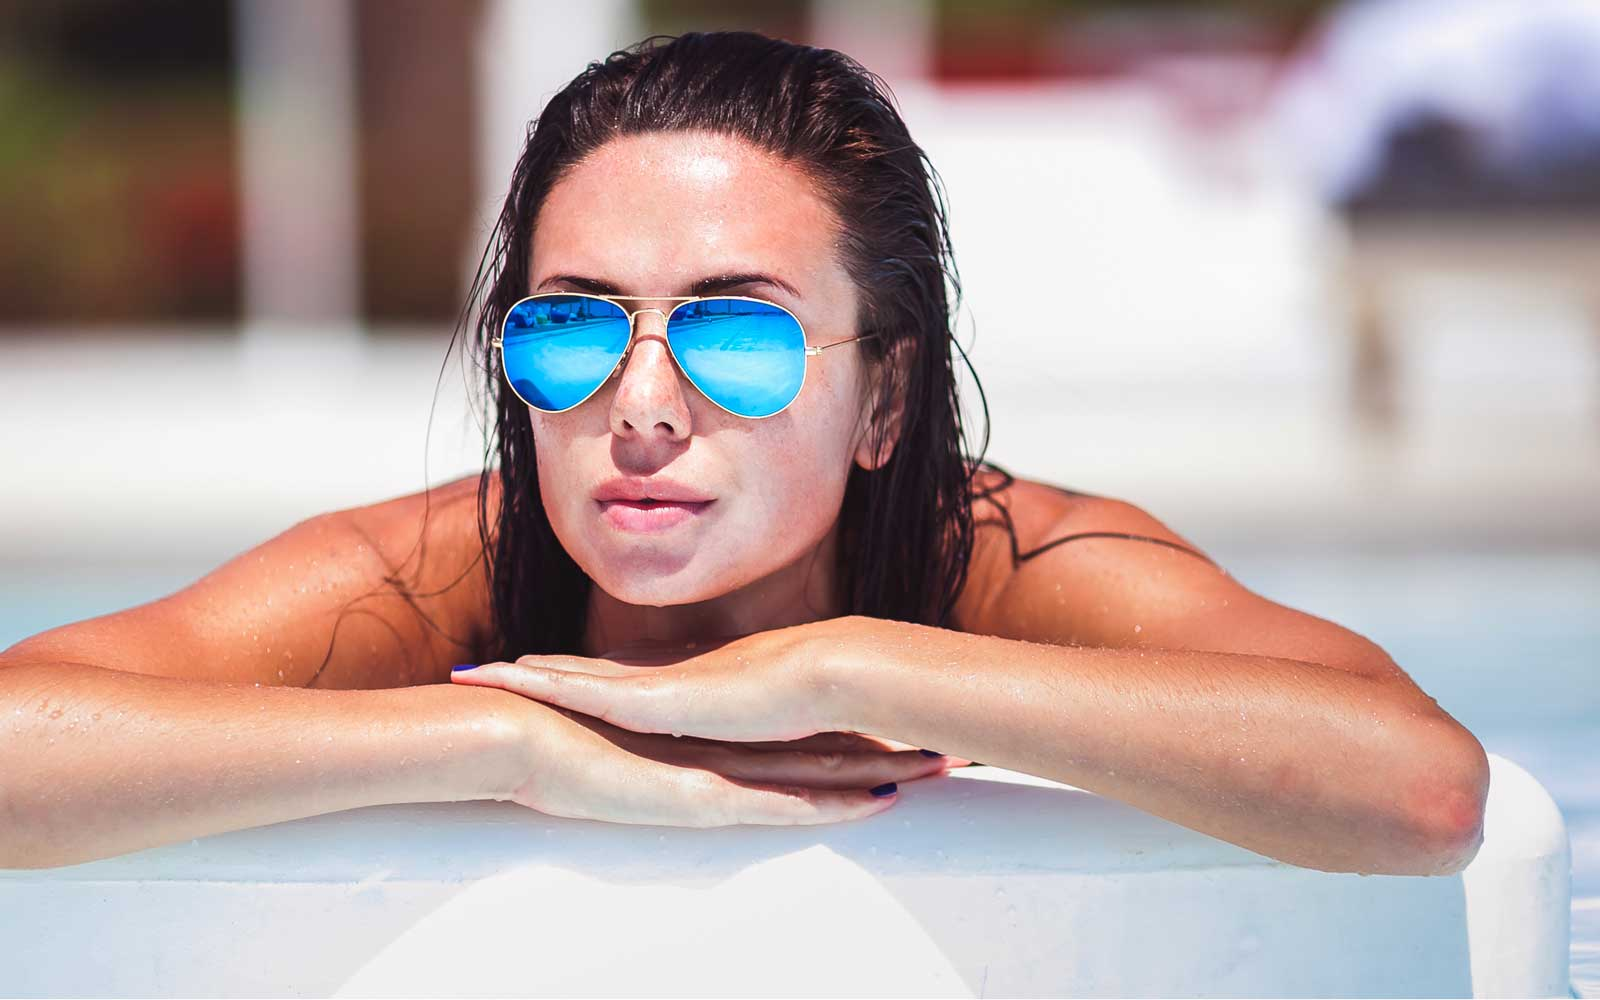 Cool Aviator Sunglasses You Need For Spring Break